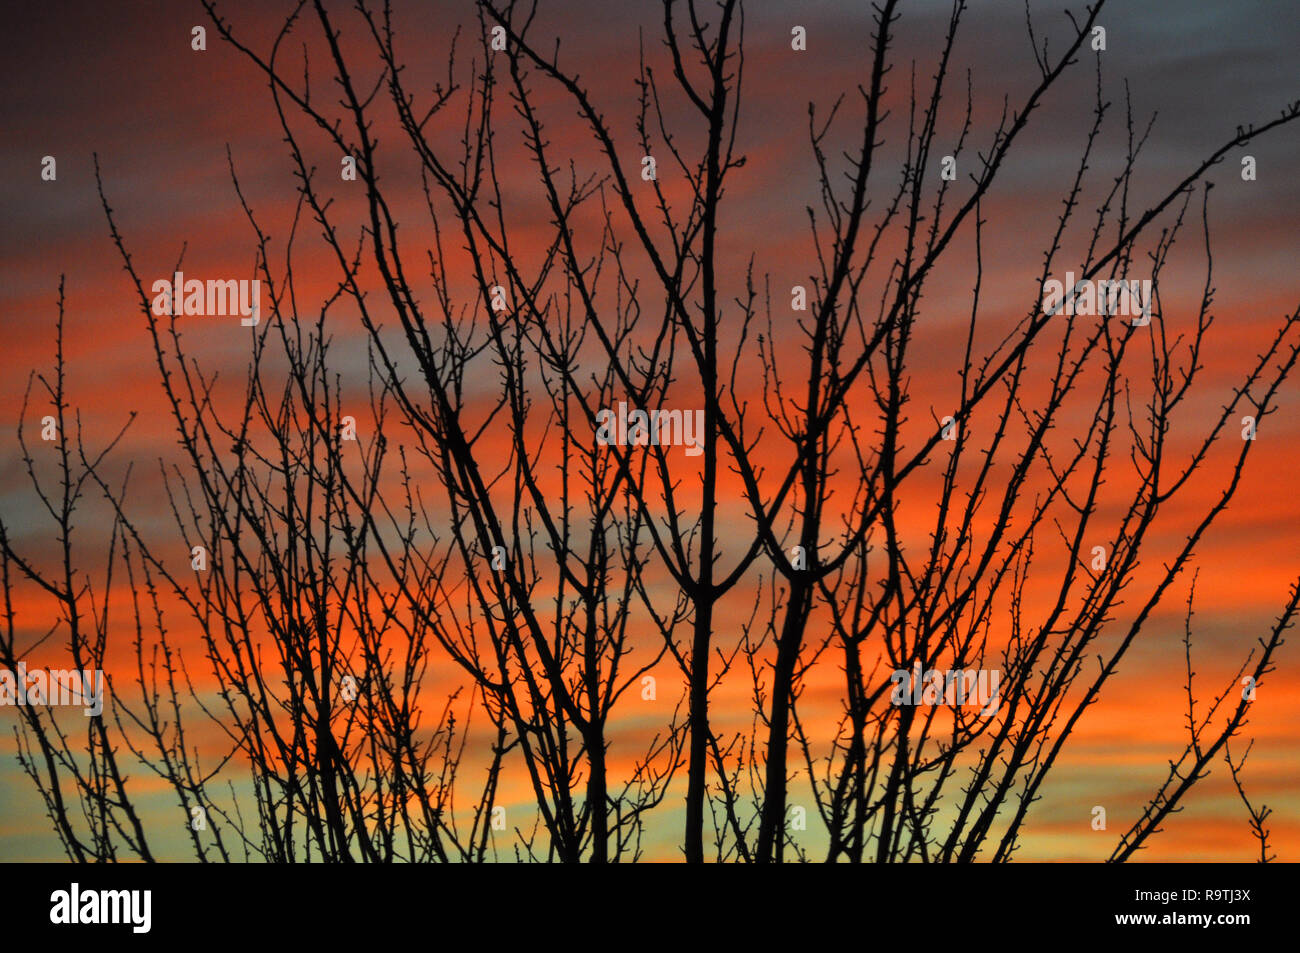 Winter sunset with silhouette of cherry tree - Stock Image